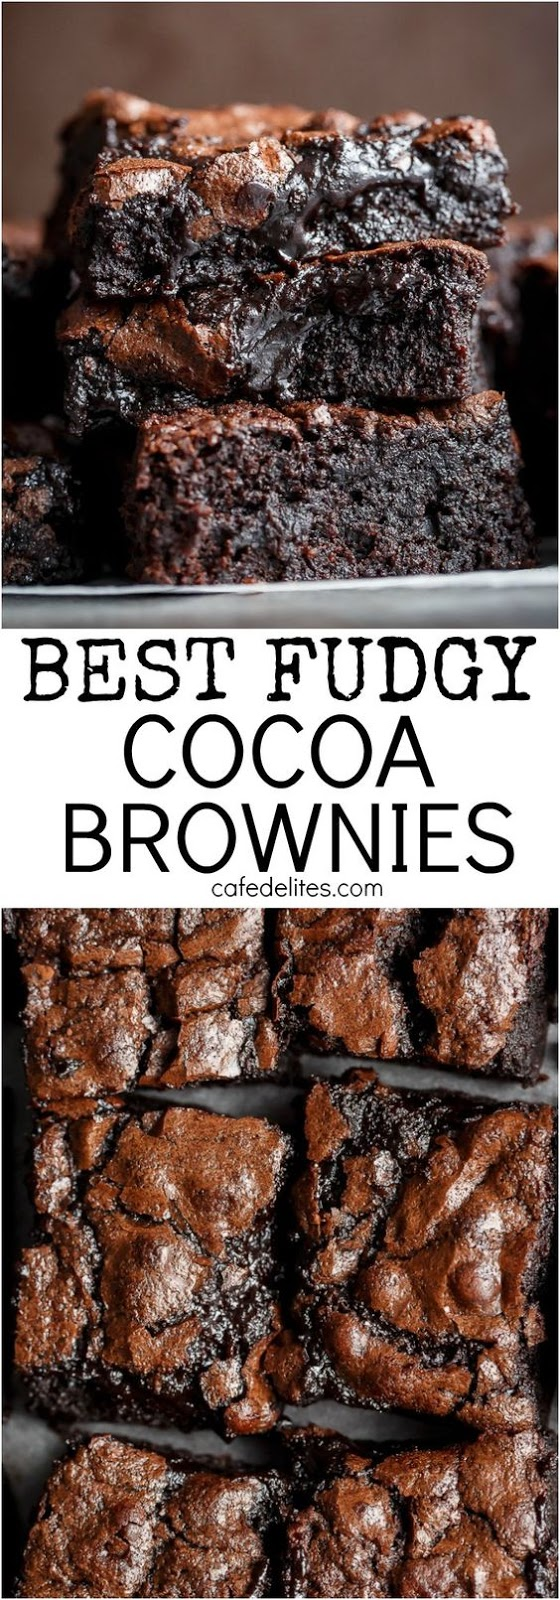 Best Fudgy Cocoa Browníes